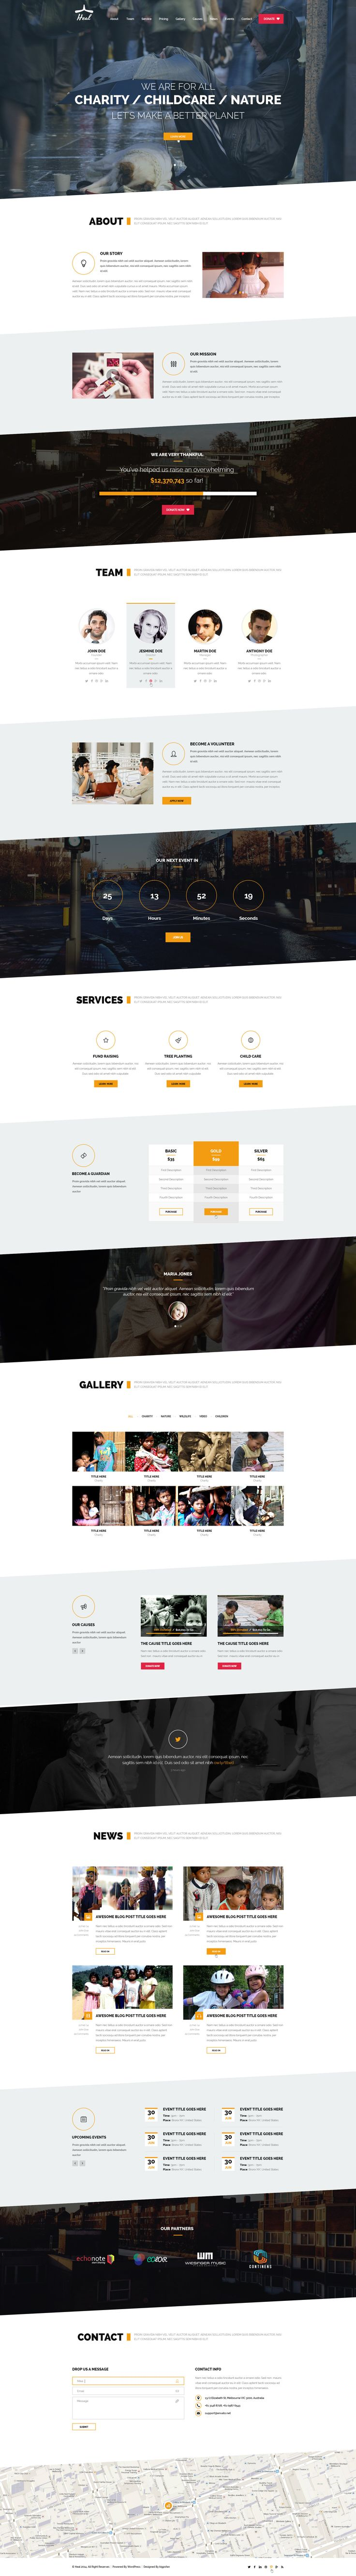 Best WordPress Themes #collections